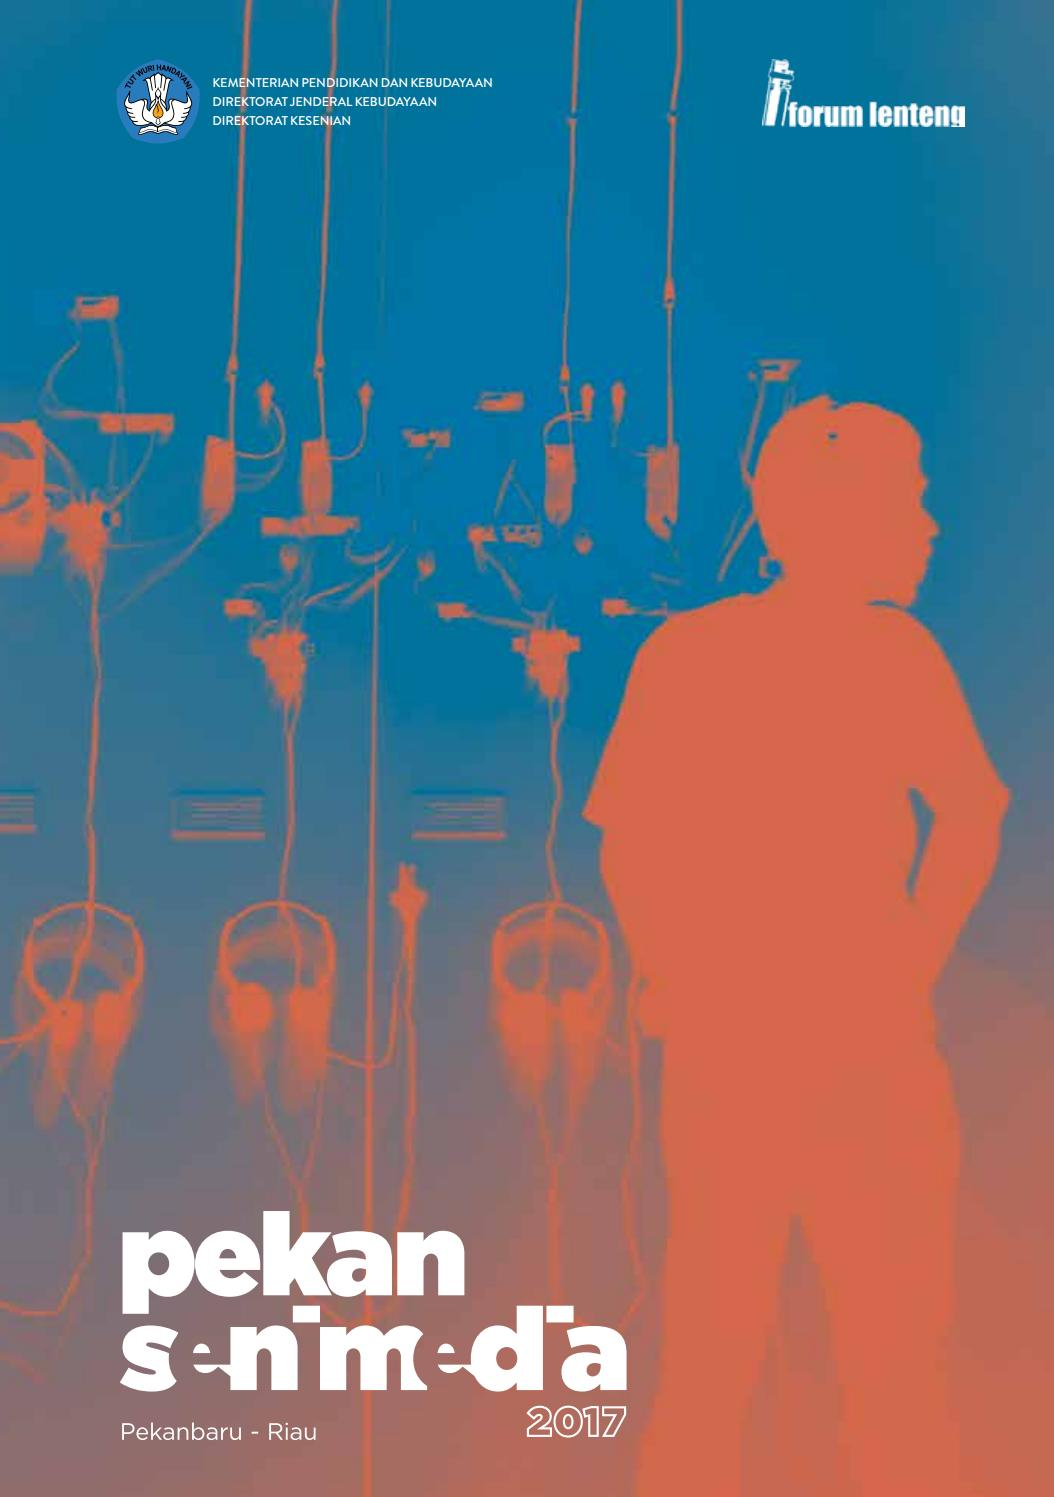 Pekan Seni Media 2017 By Forum Lenteng Issuu